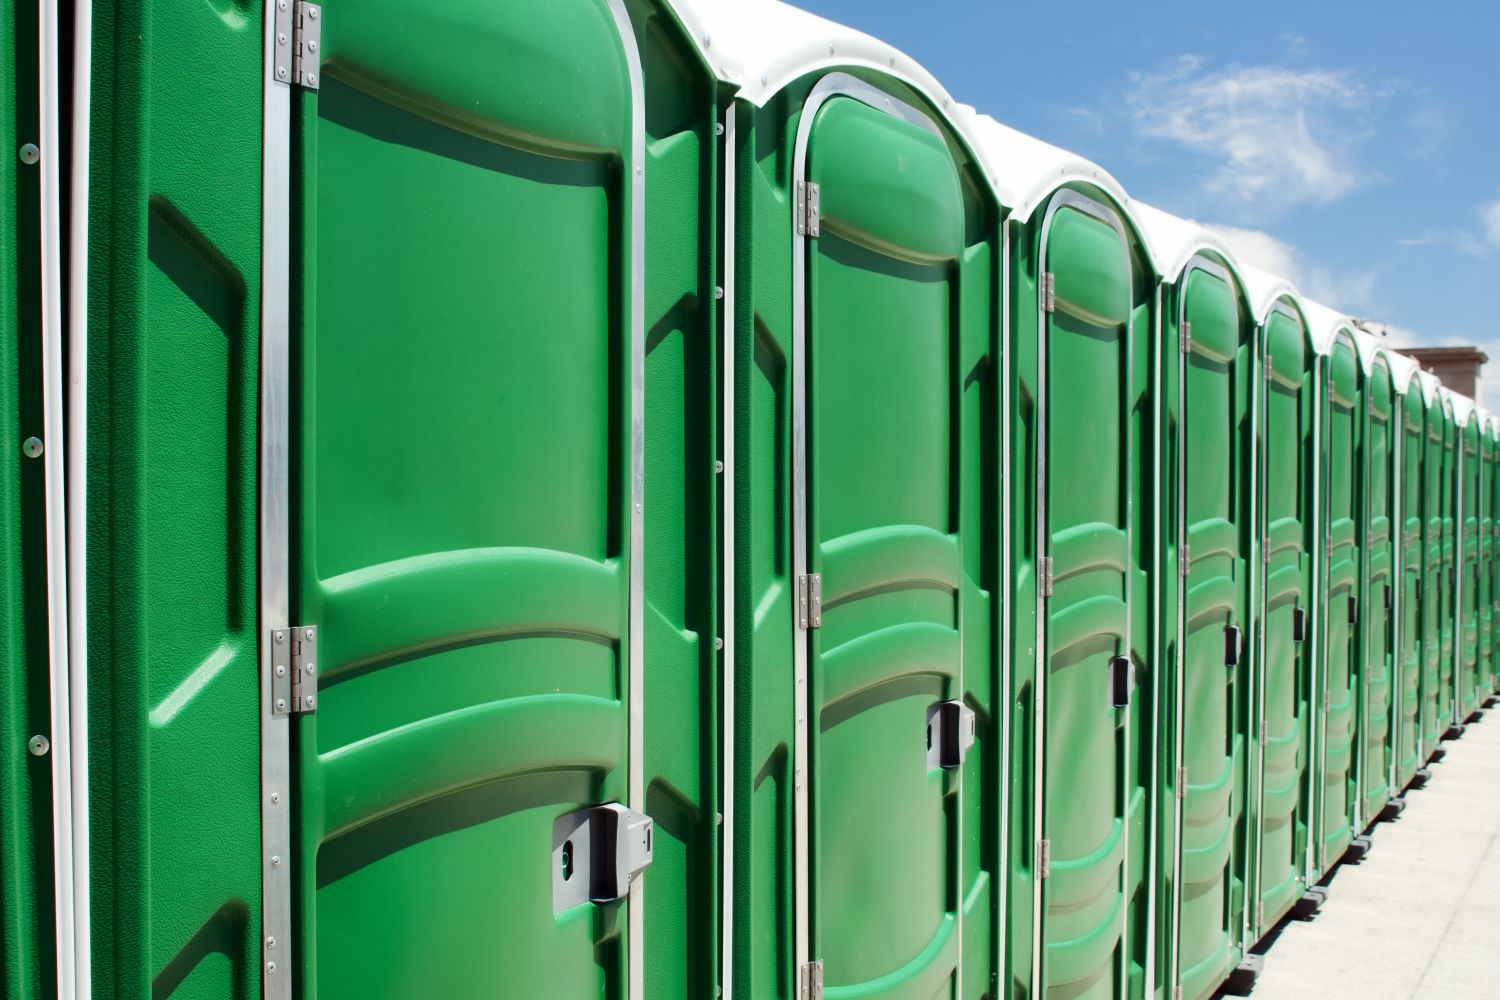 row of green portable toilets in Baxter, AR